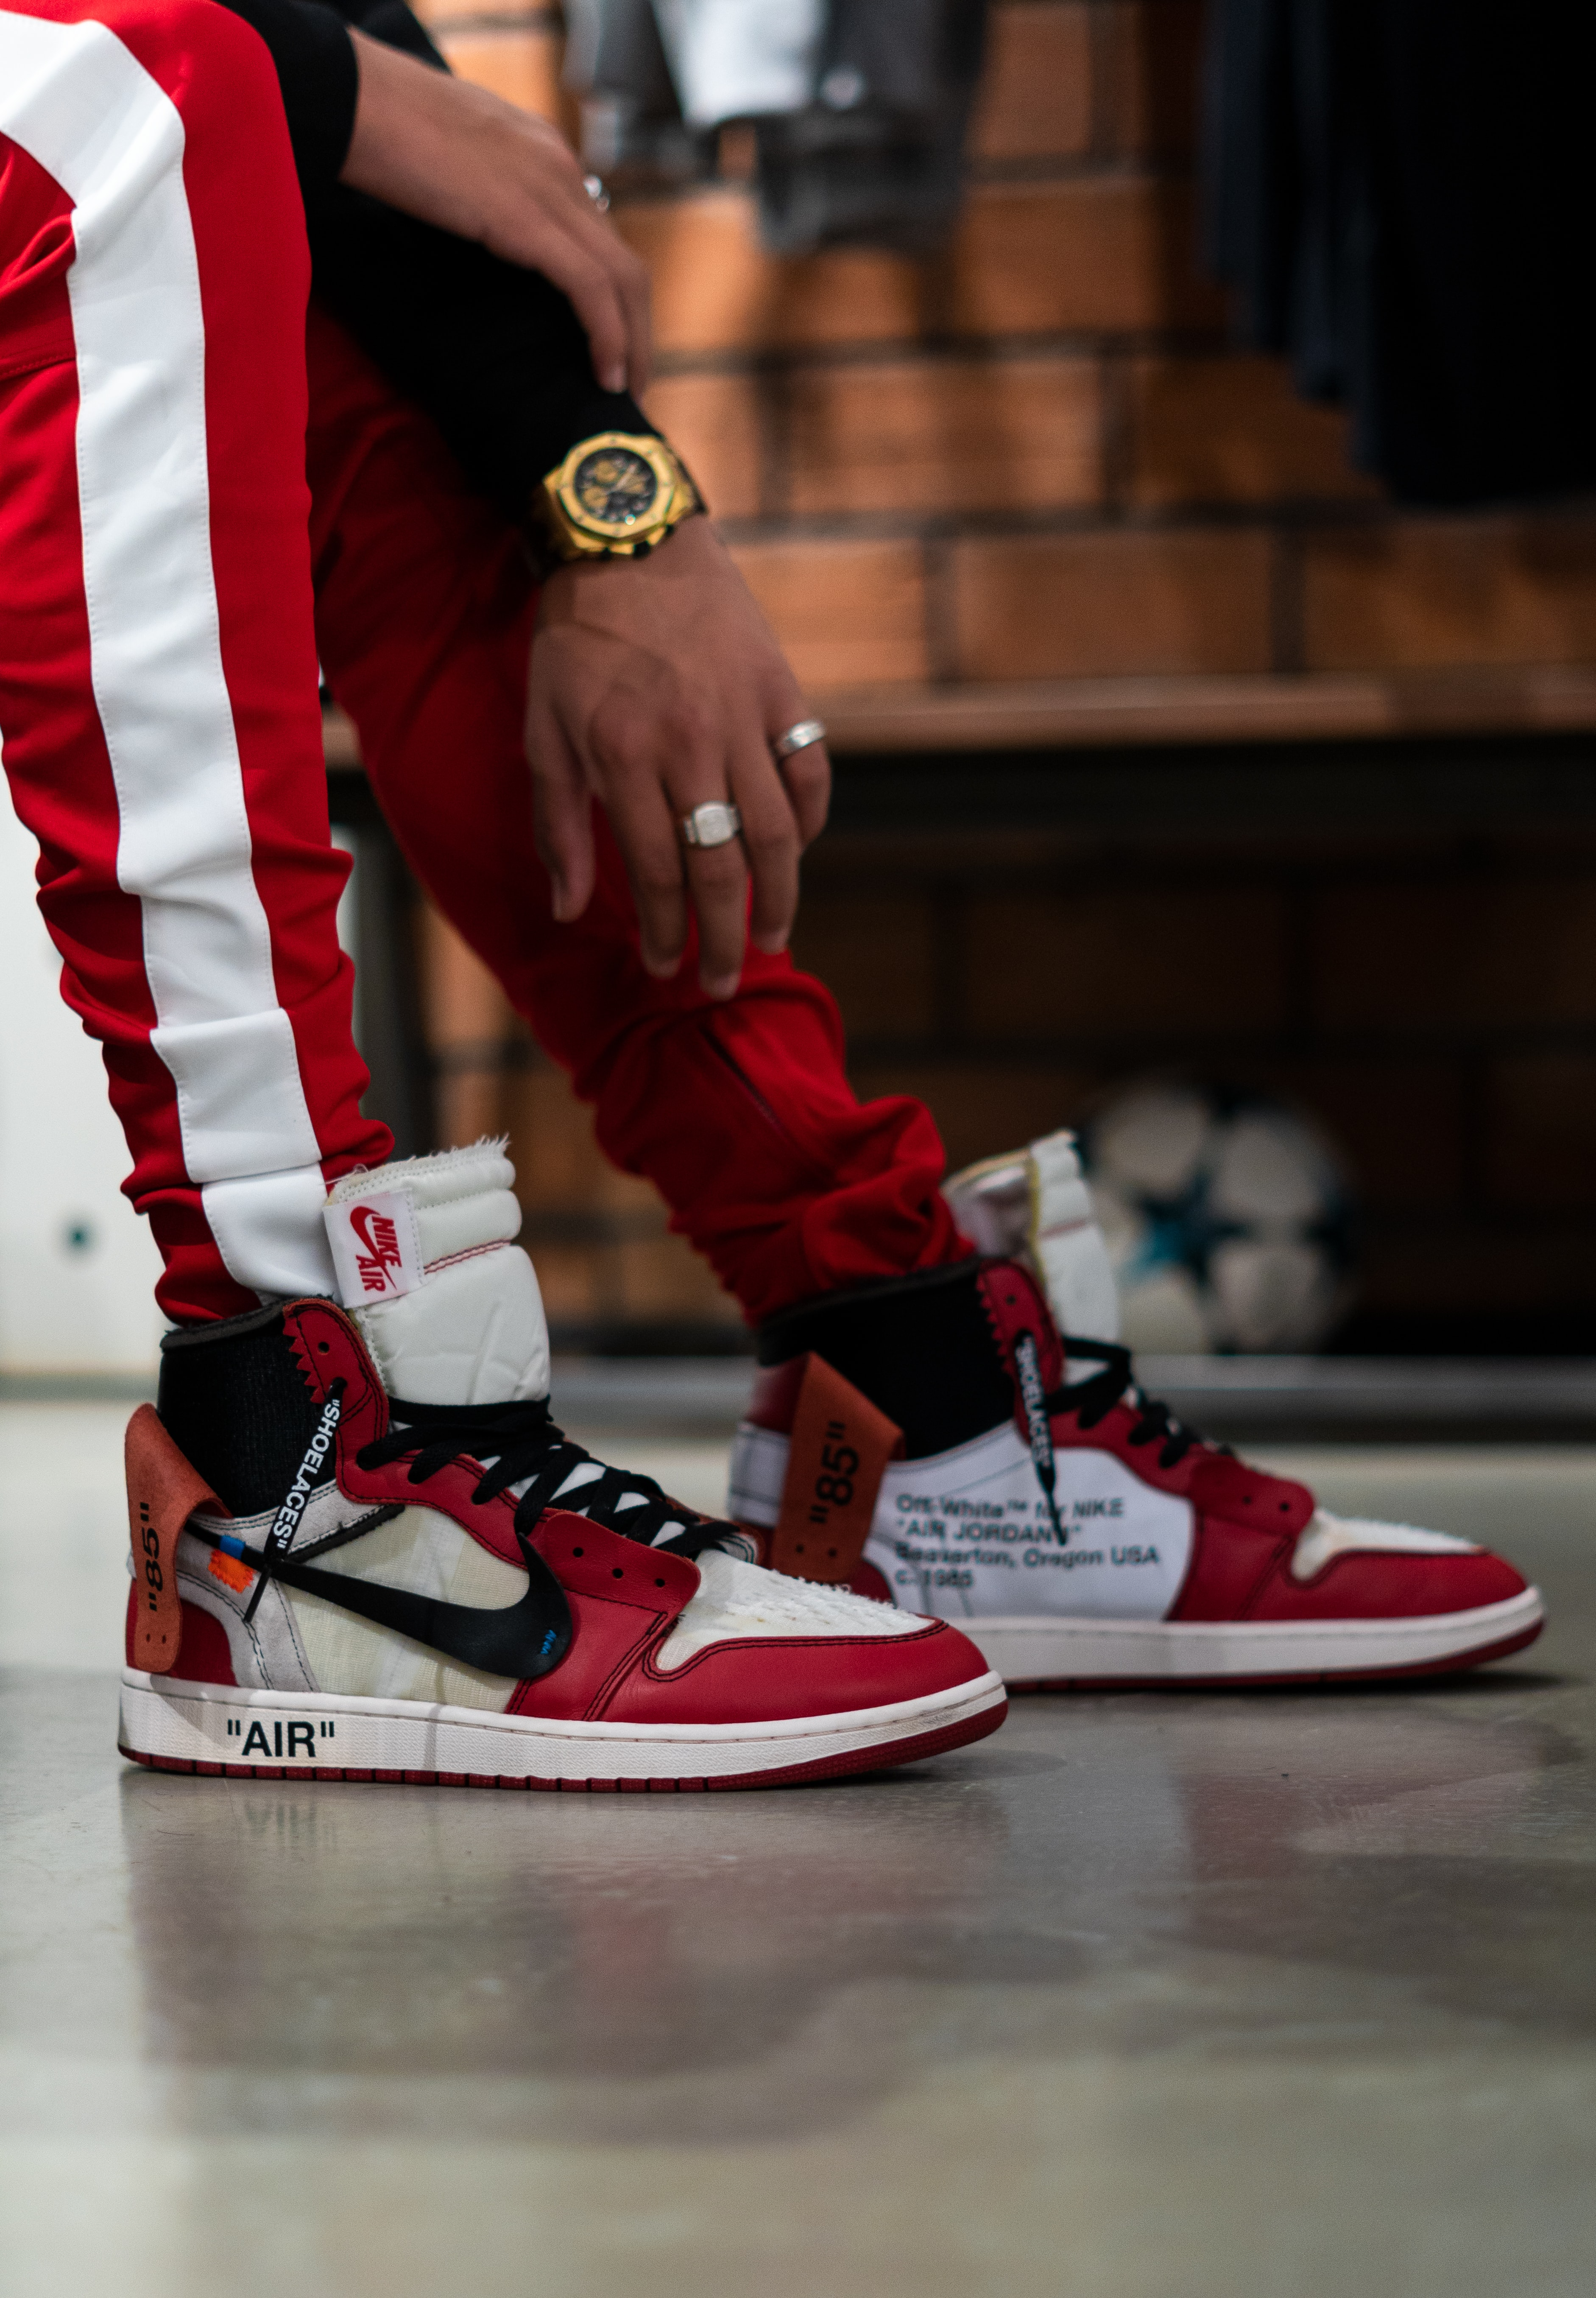 person wearing chicago Air Jordan 1 x Off-white